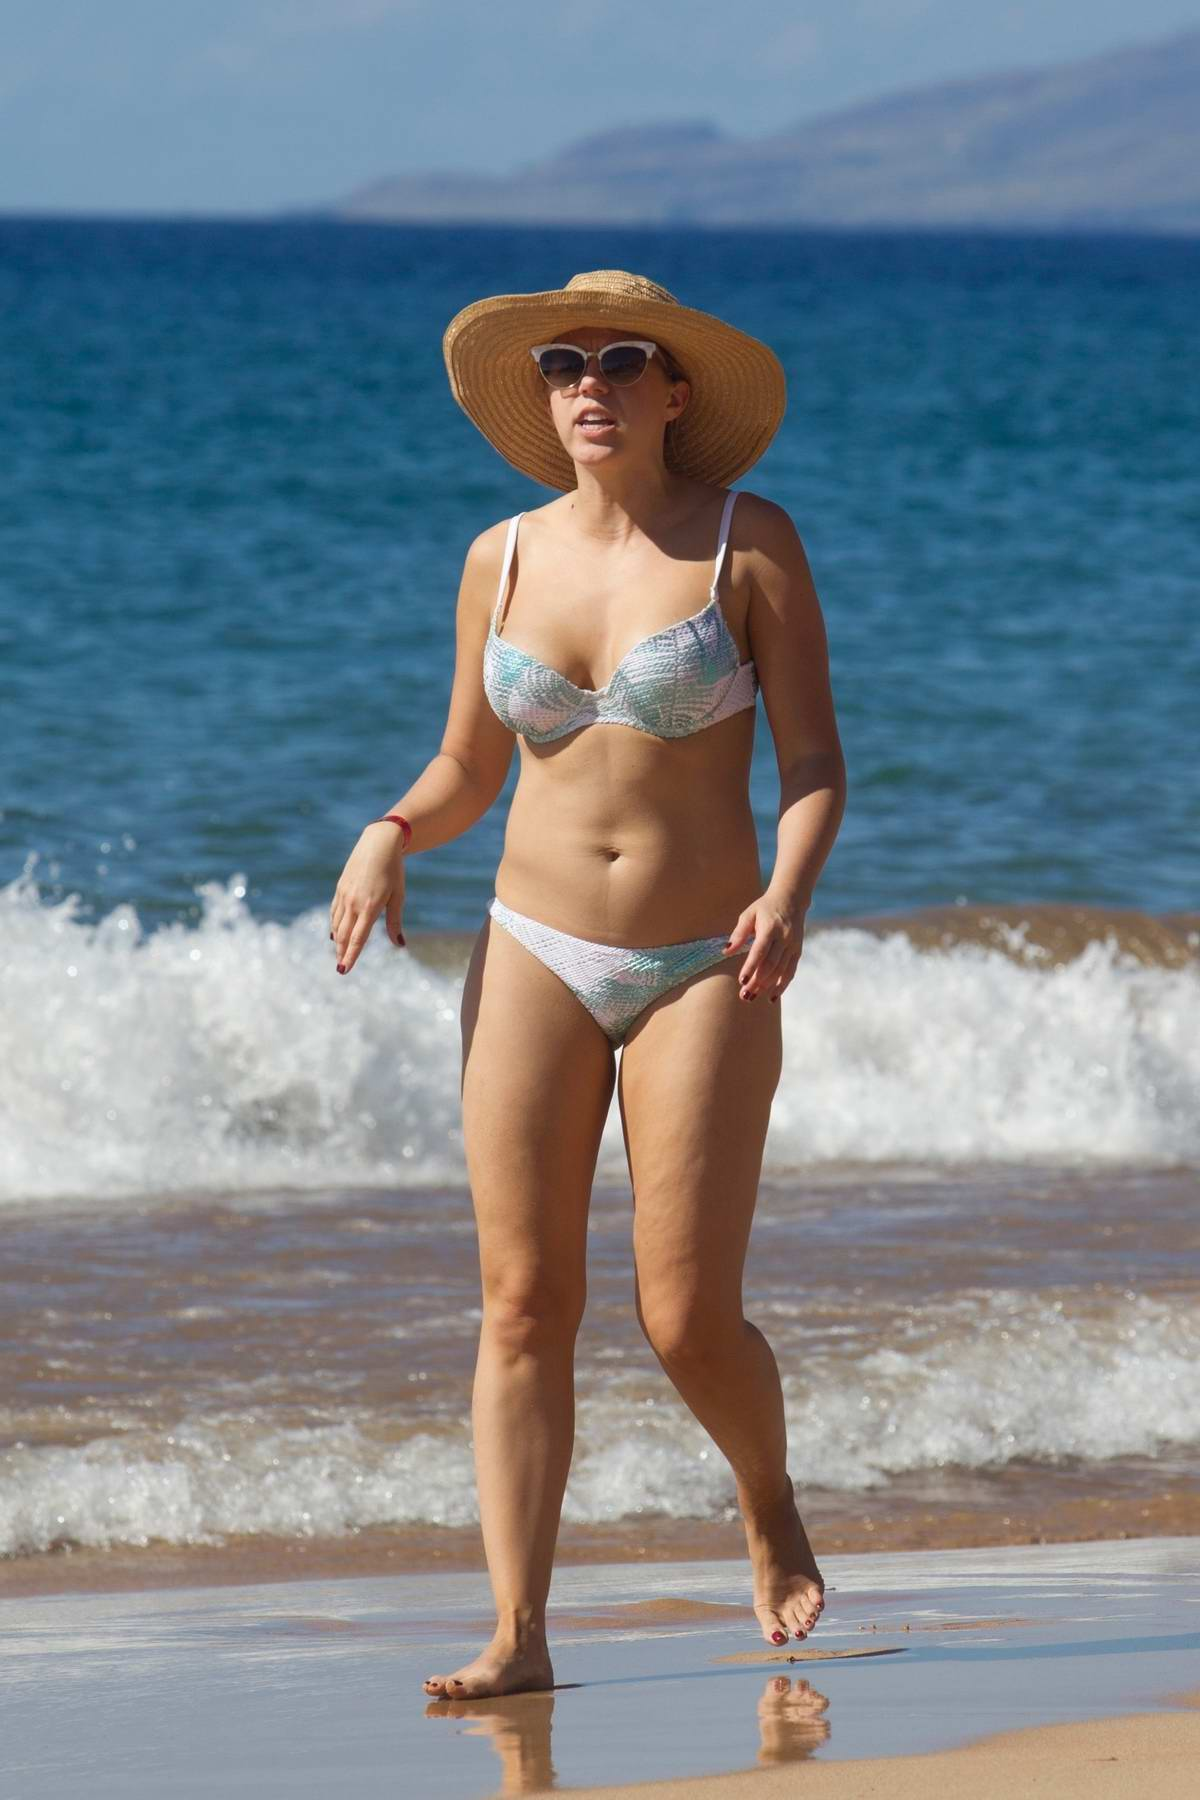 Jodie Sweetin hits the beach in her bikini in Maui, Hawaii